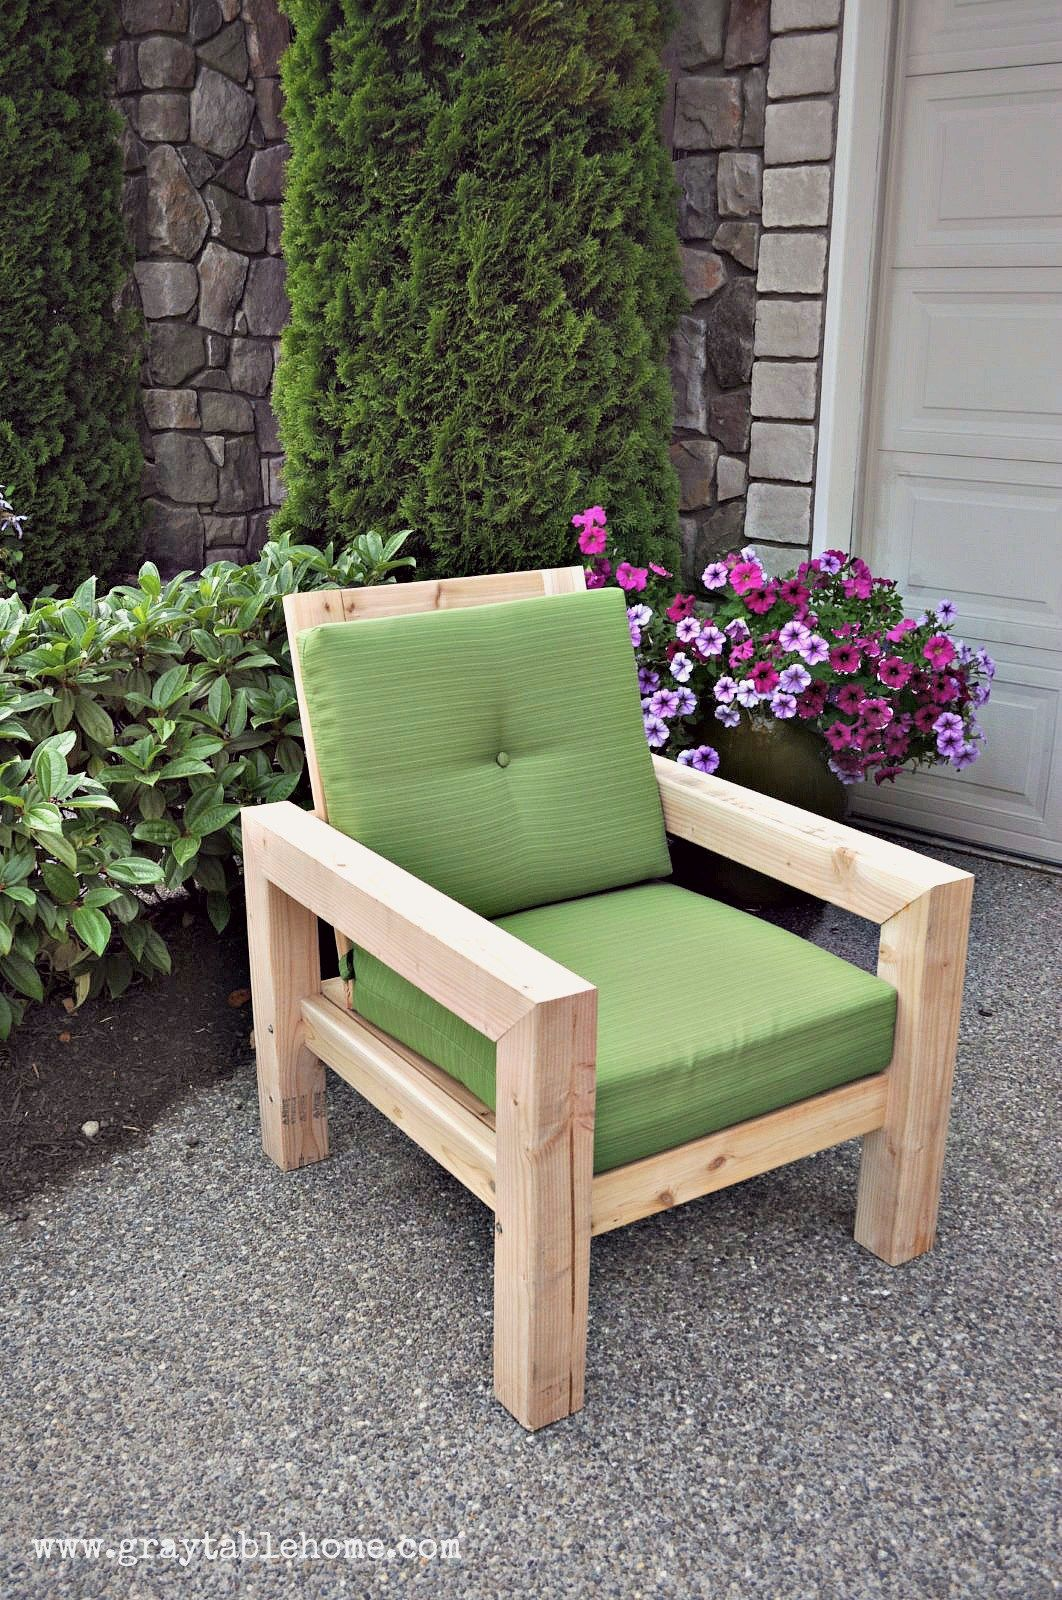 Diy Modern Rustic Outdoor Chair Plans Using Outdoor Cushions